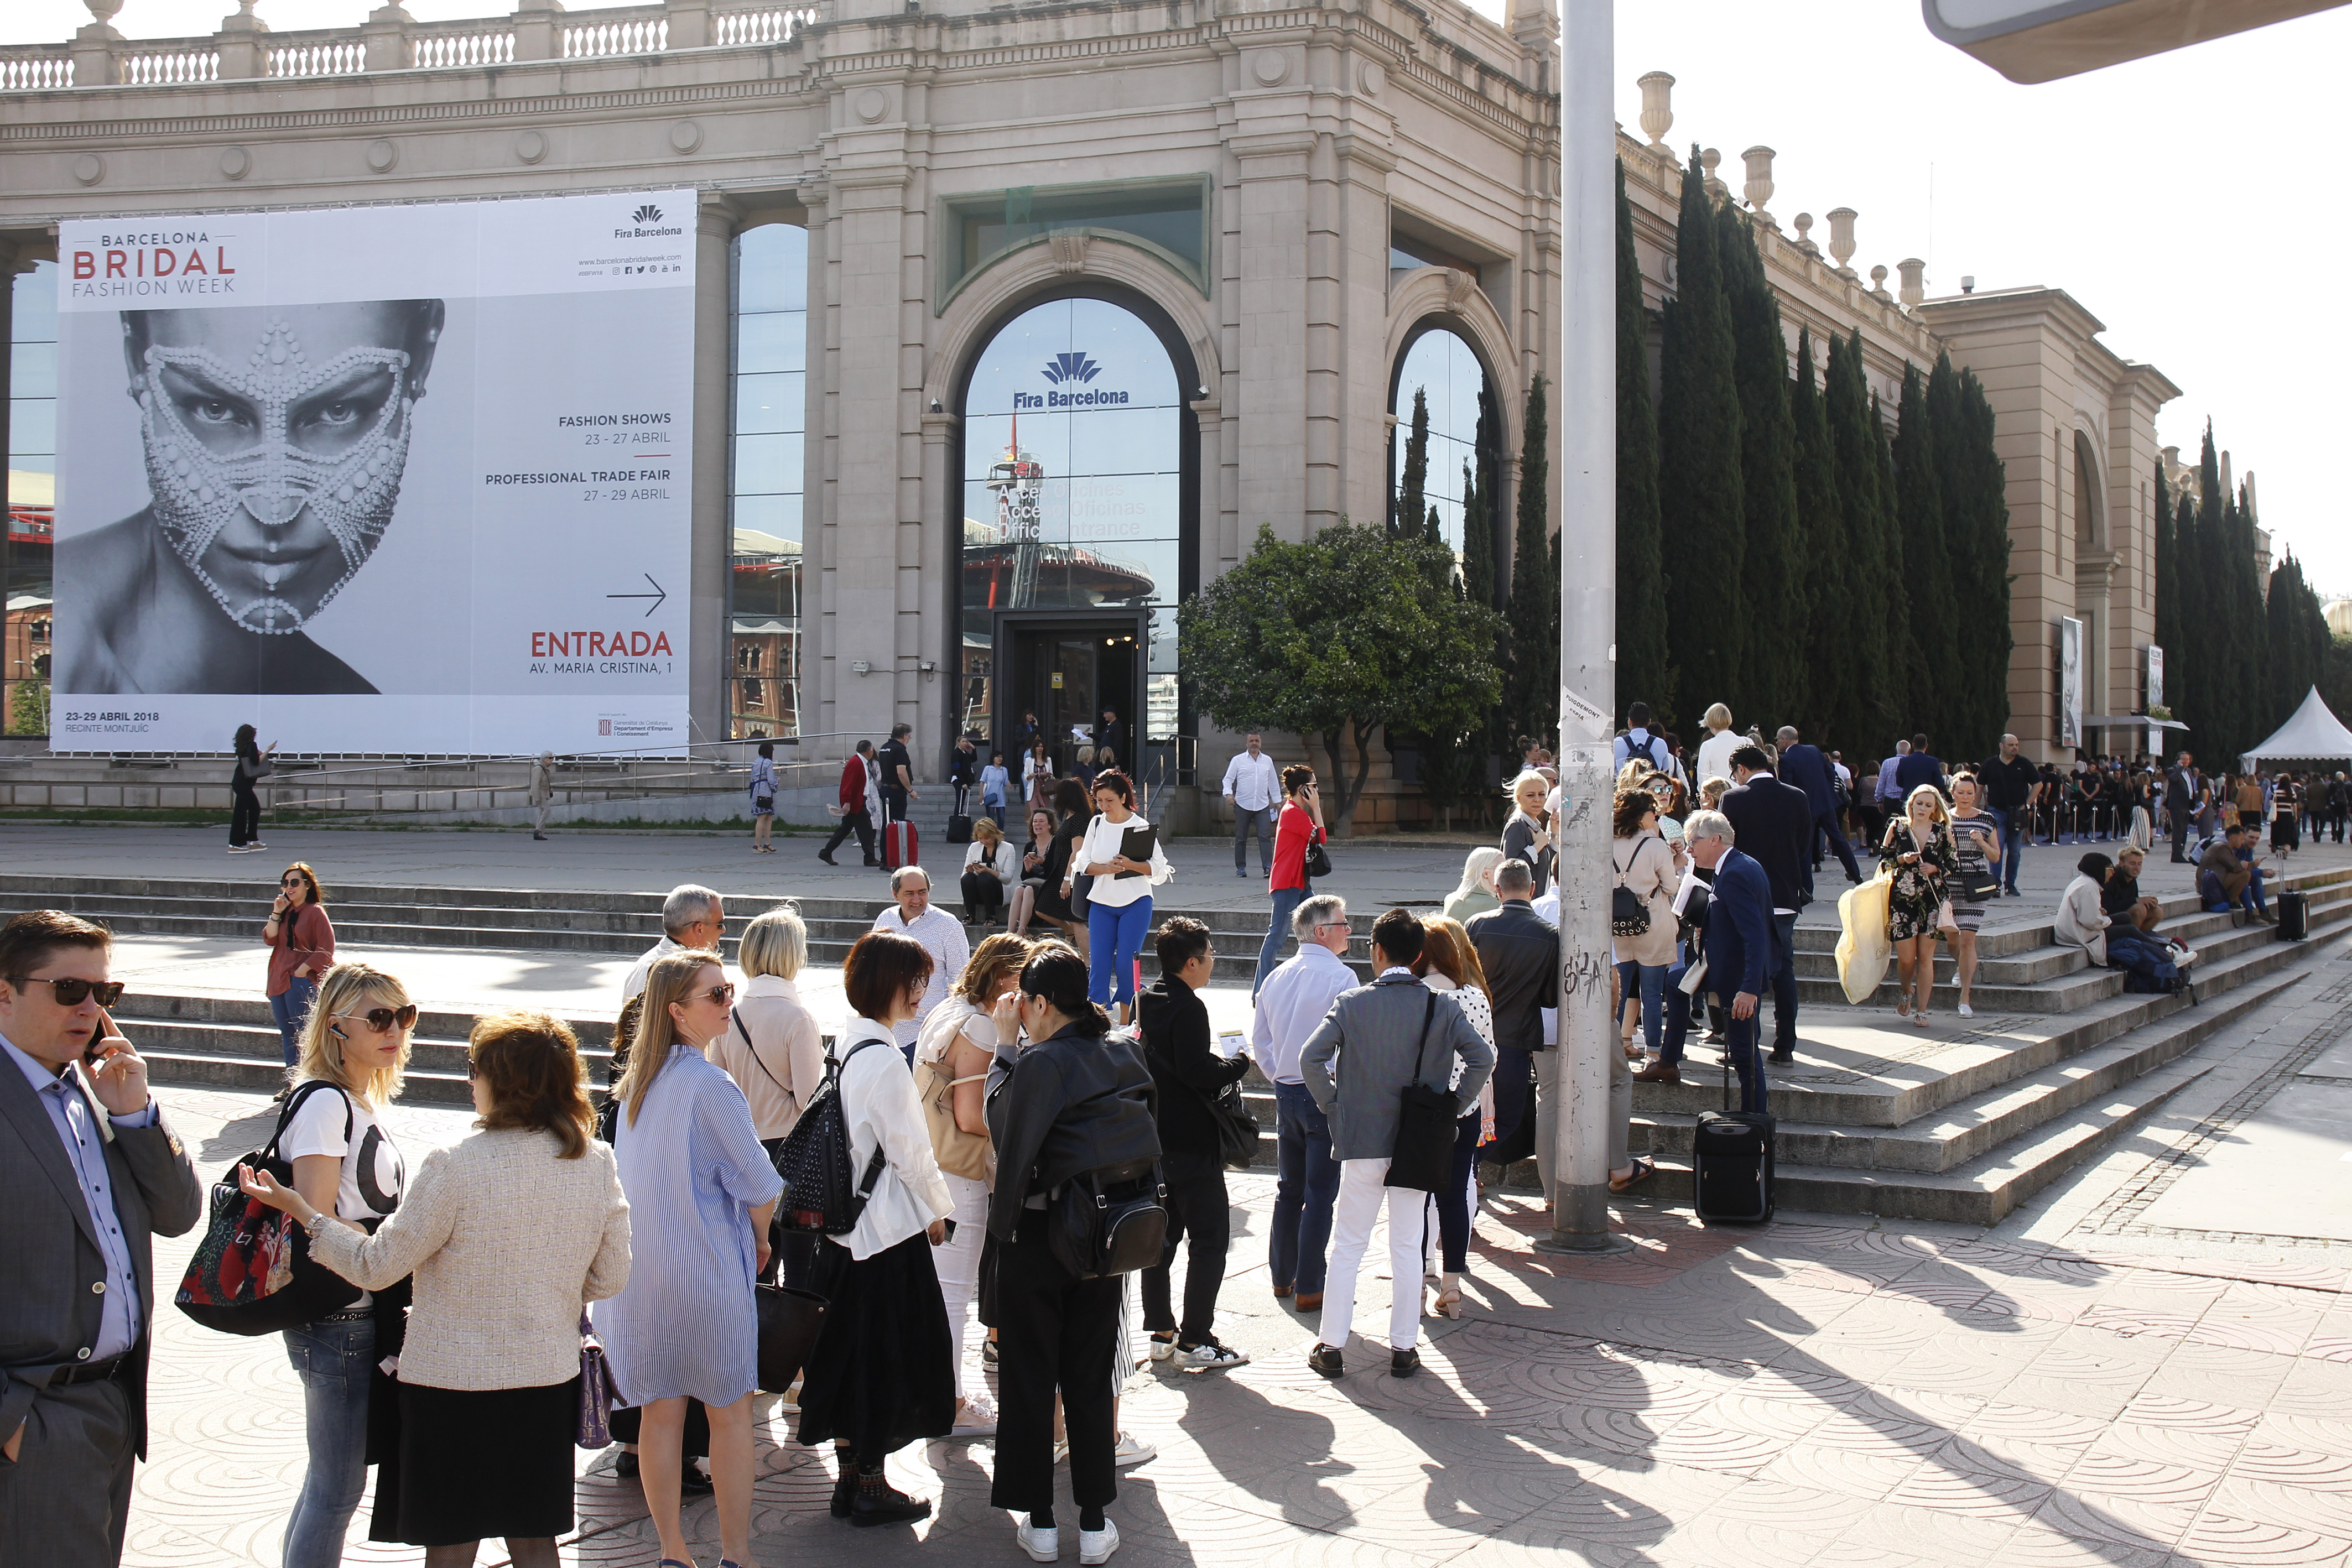 The scene at the Valmont Barcelona Bridal Fashion Week.